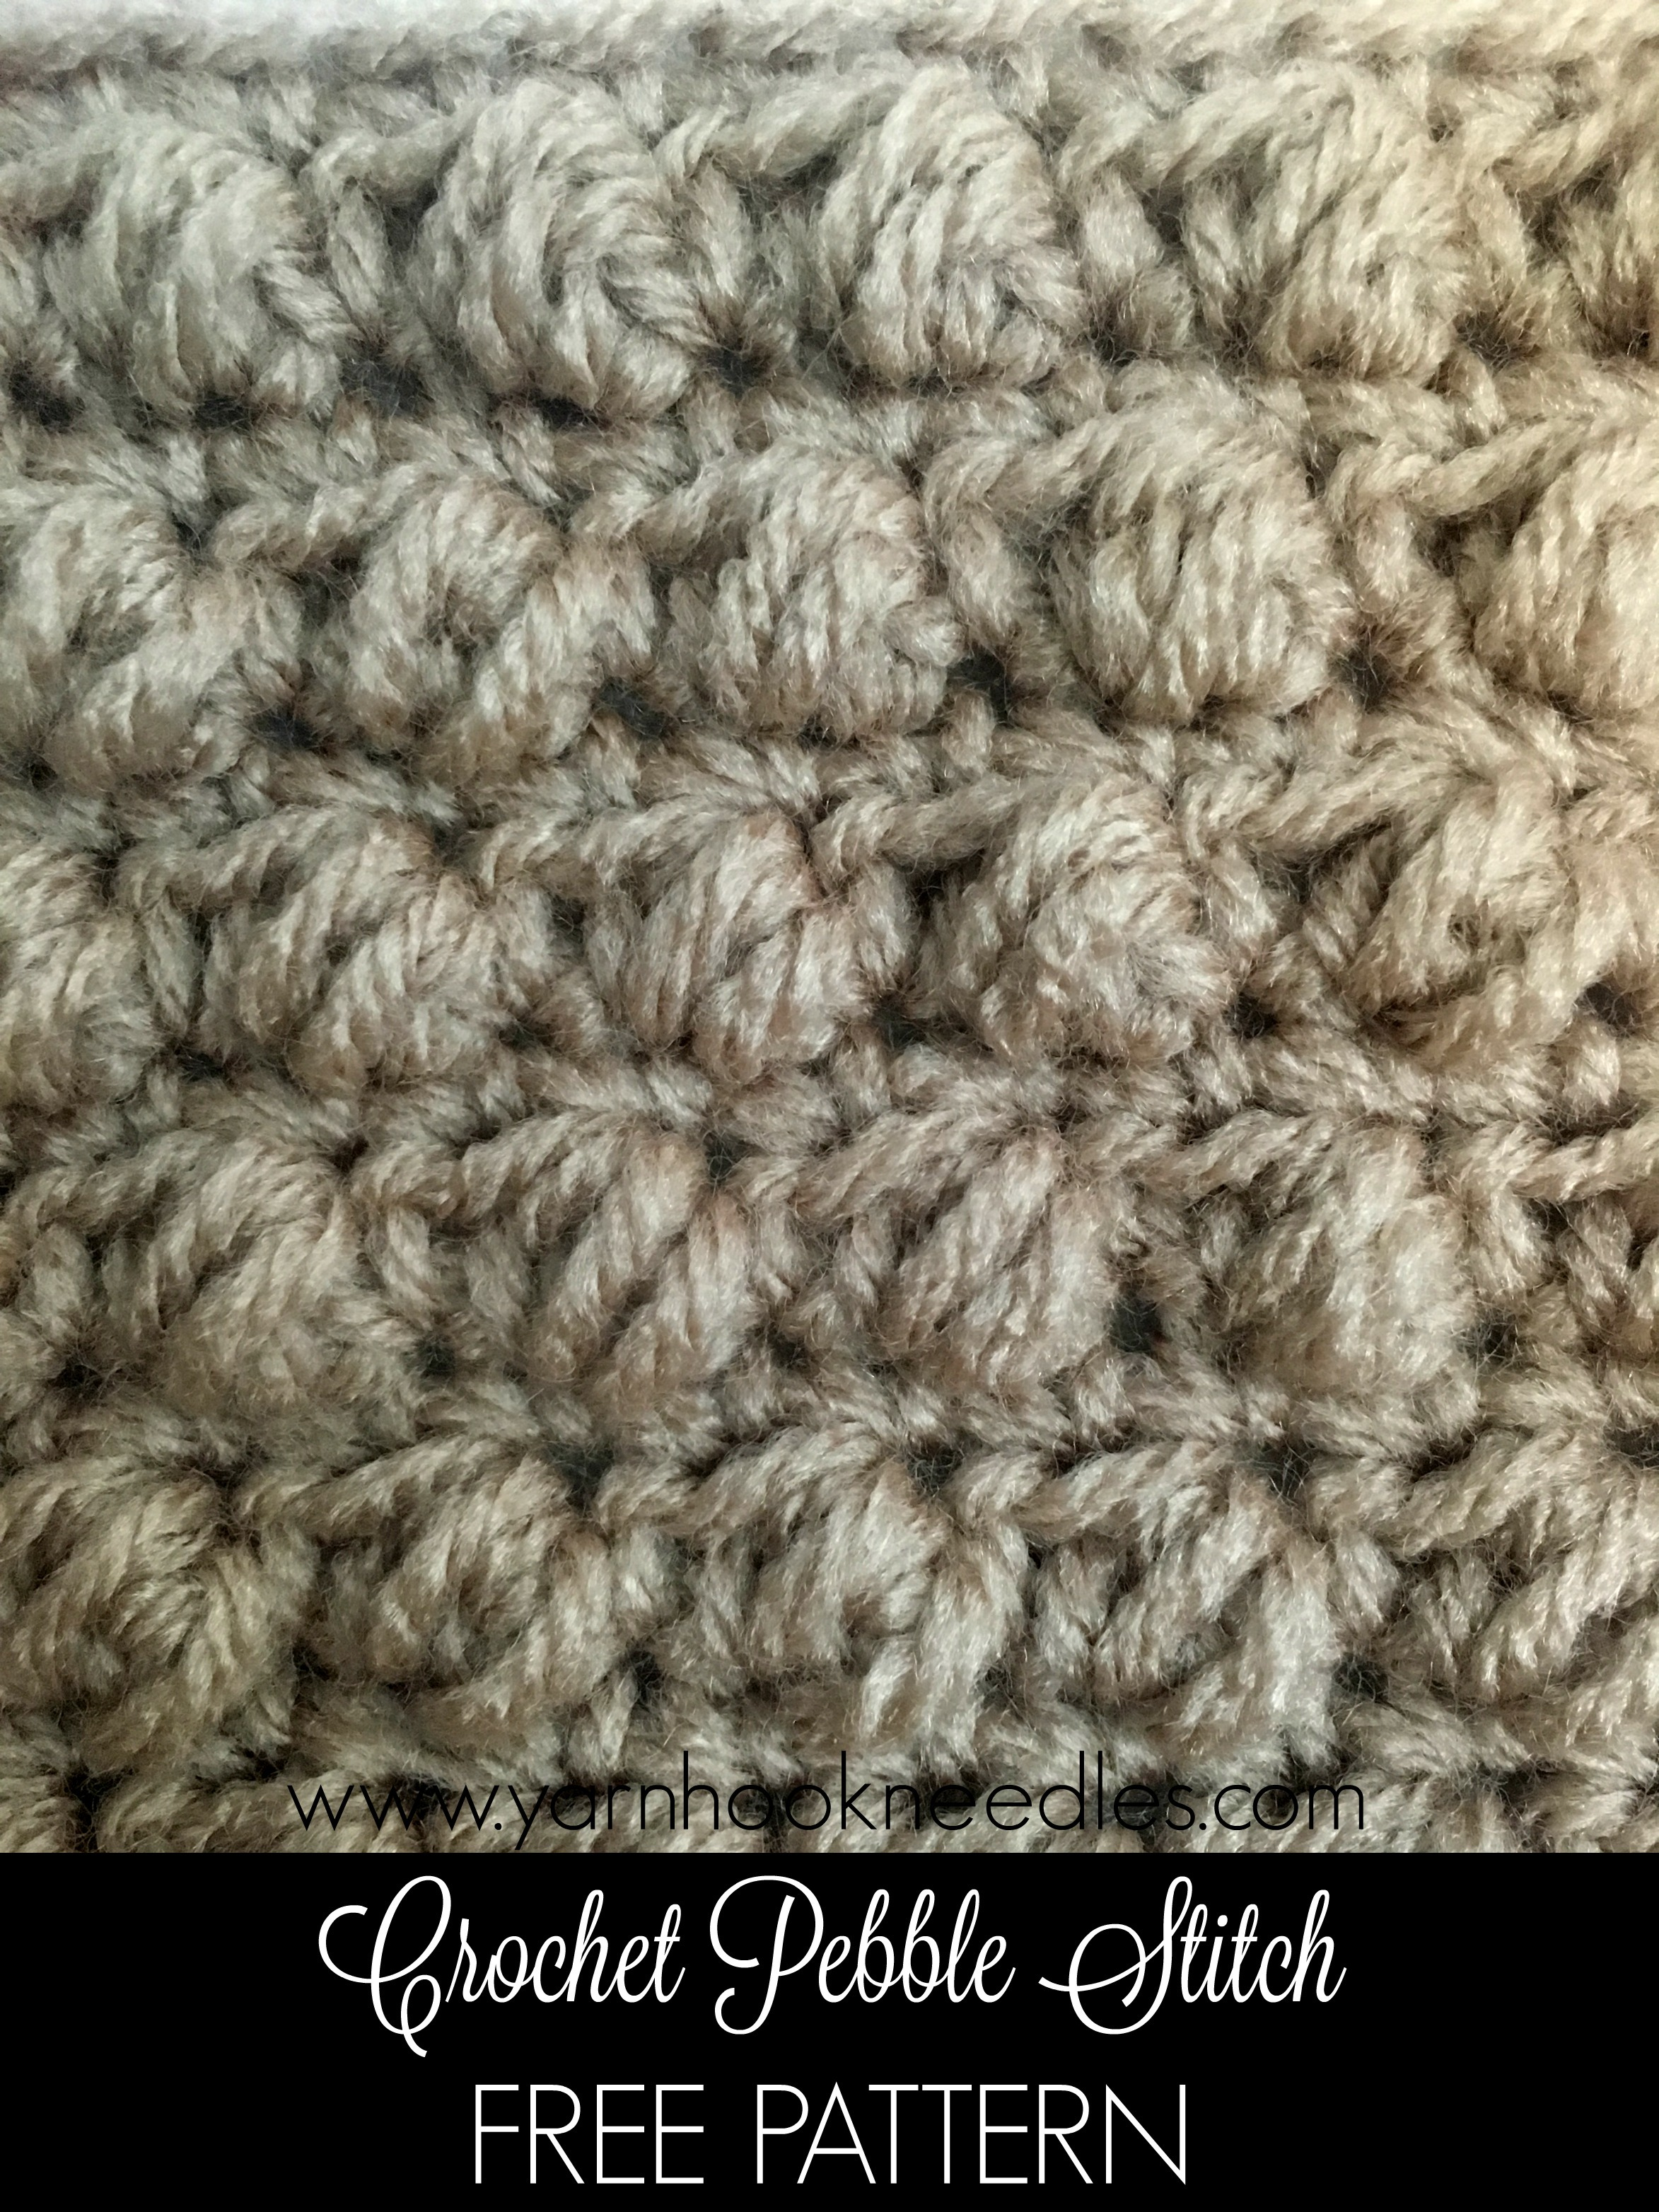 Crochet Pebble Stitch with FREE Pattern! - Yarn|Hook|Needles